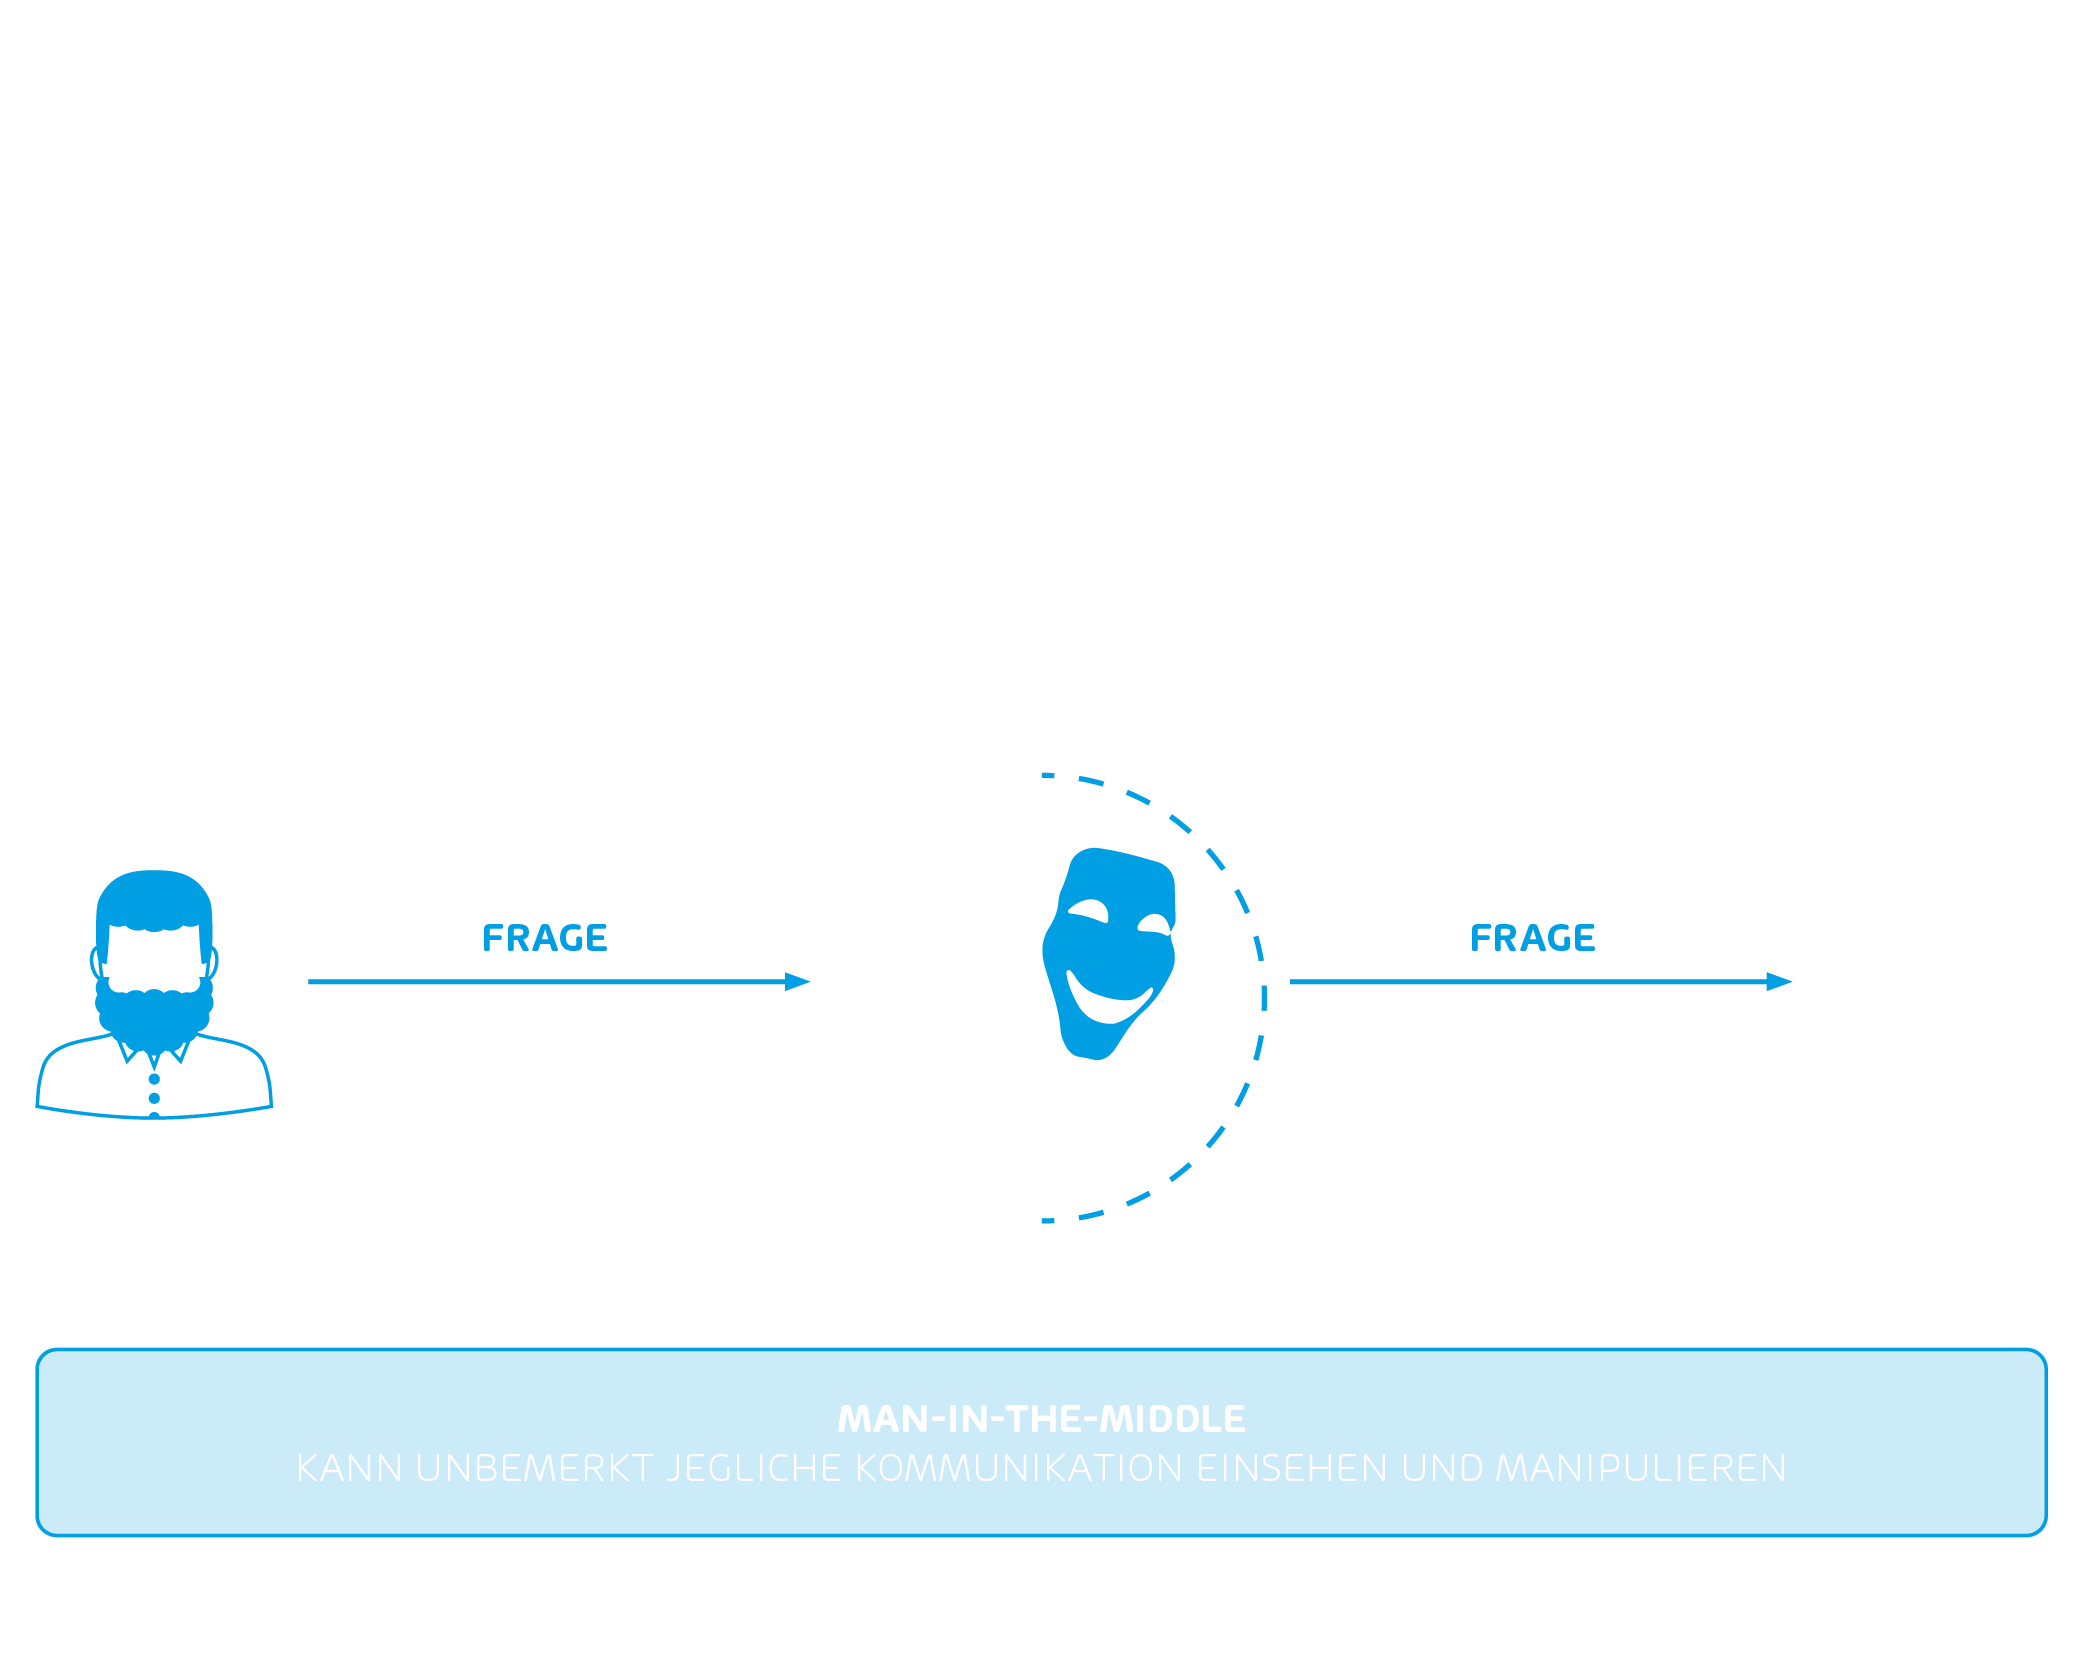 Man in the Middle Angriffe erklärt